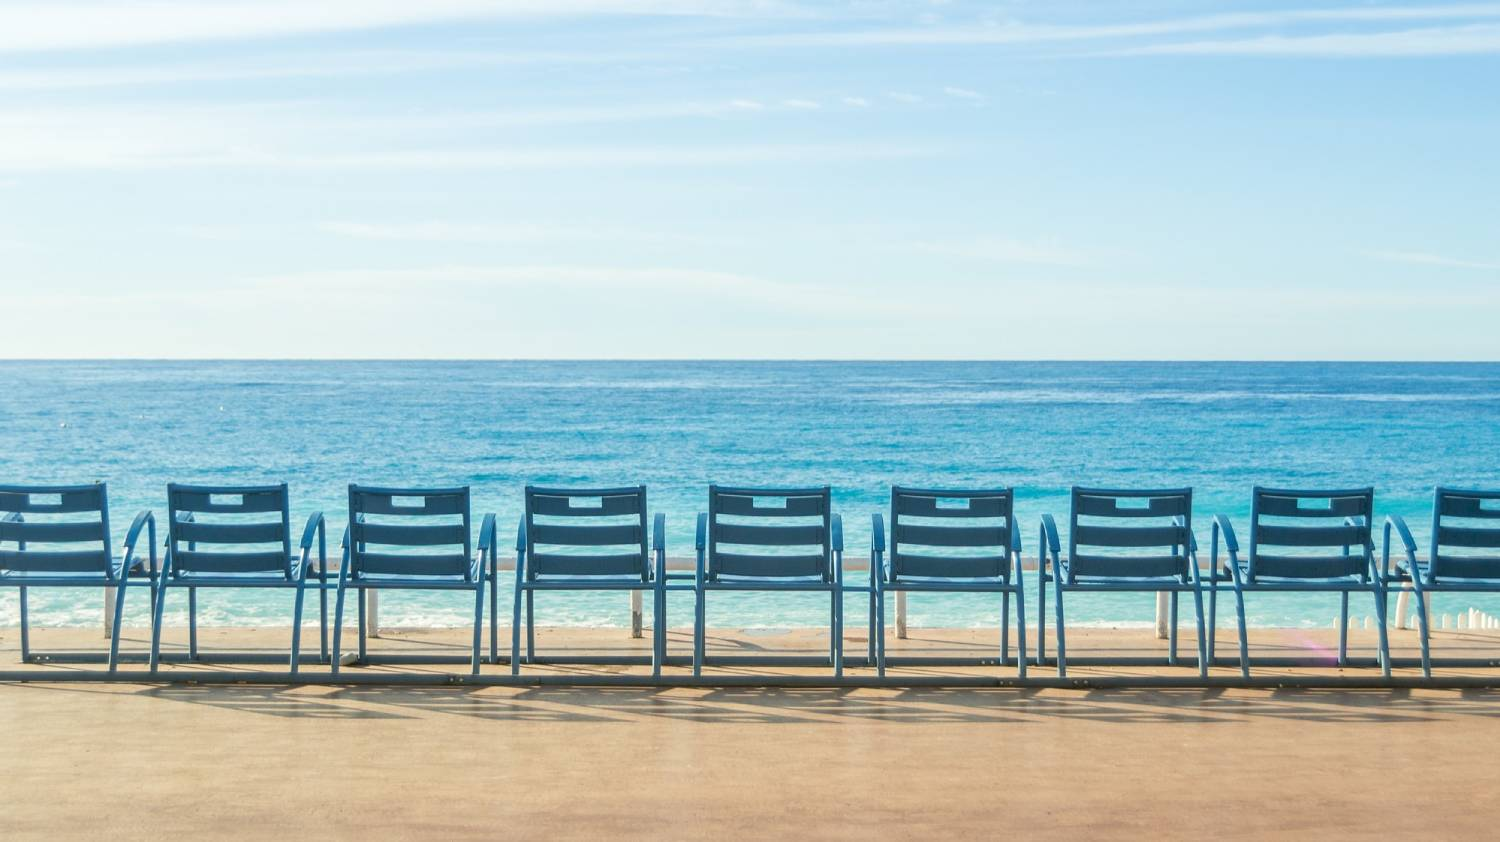 Promenade des Anglais - Things To Do In Nice